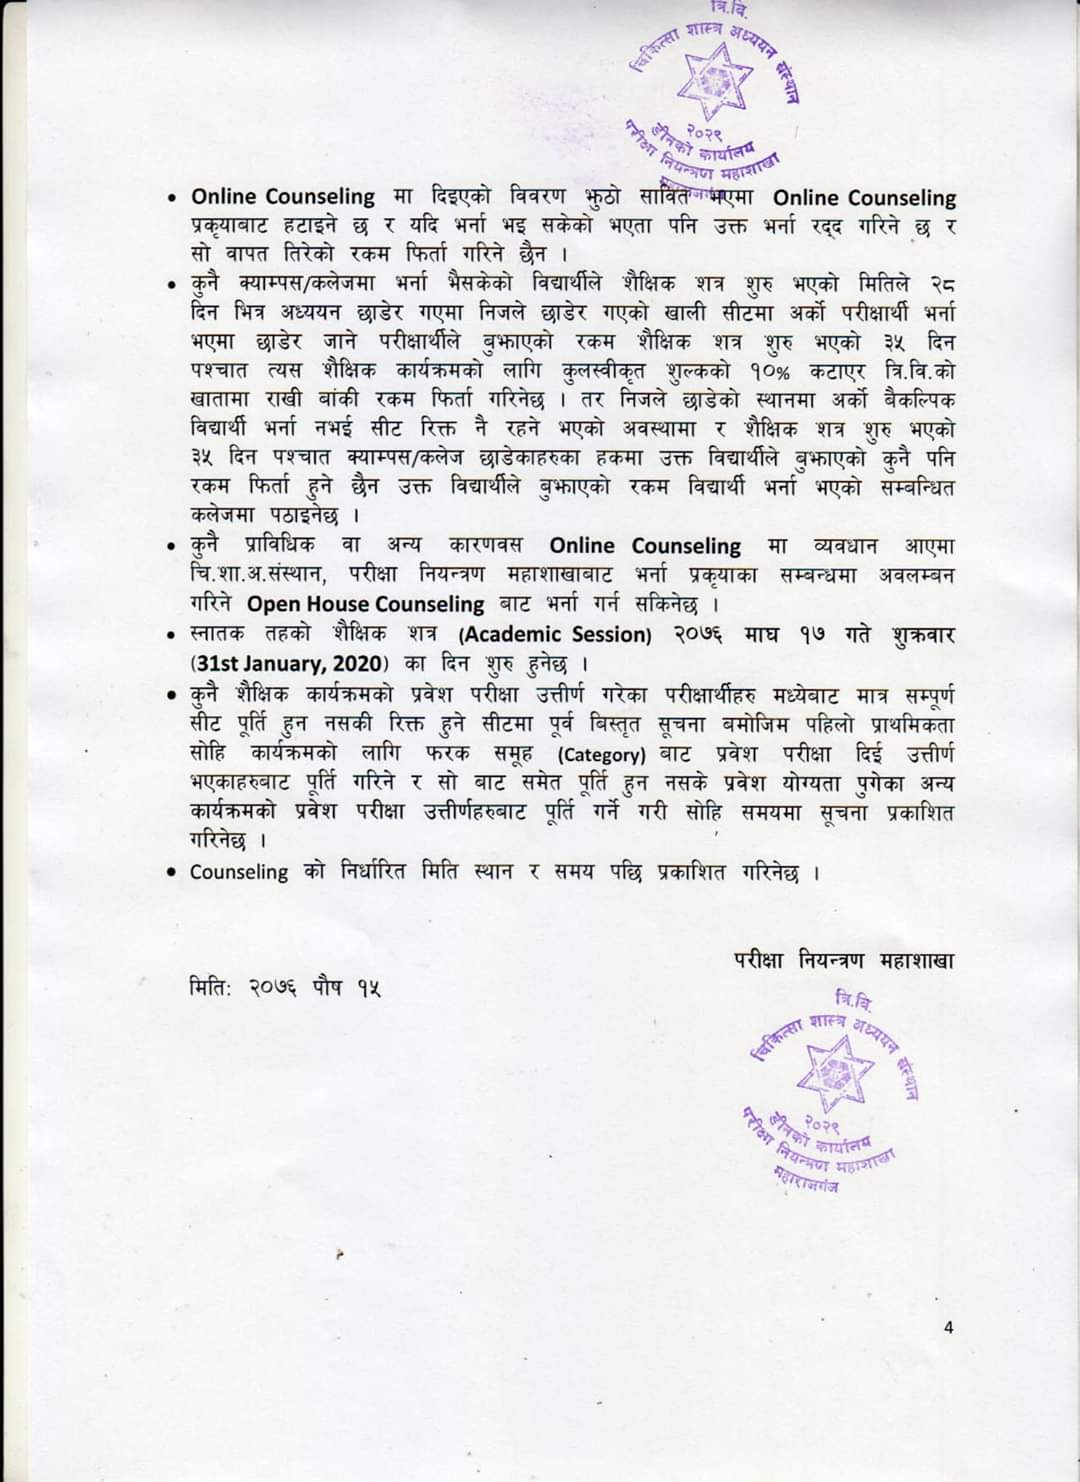 Notice Regarding Online Counseling of Bachelor Entrance Examination 2076/077 (2019) for Nepalese Candidates